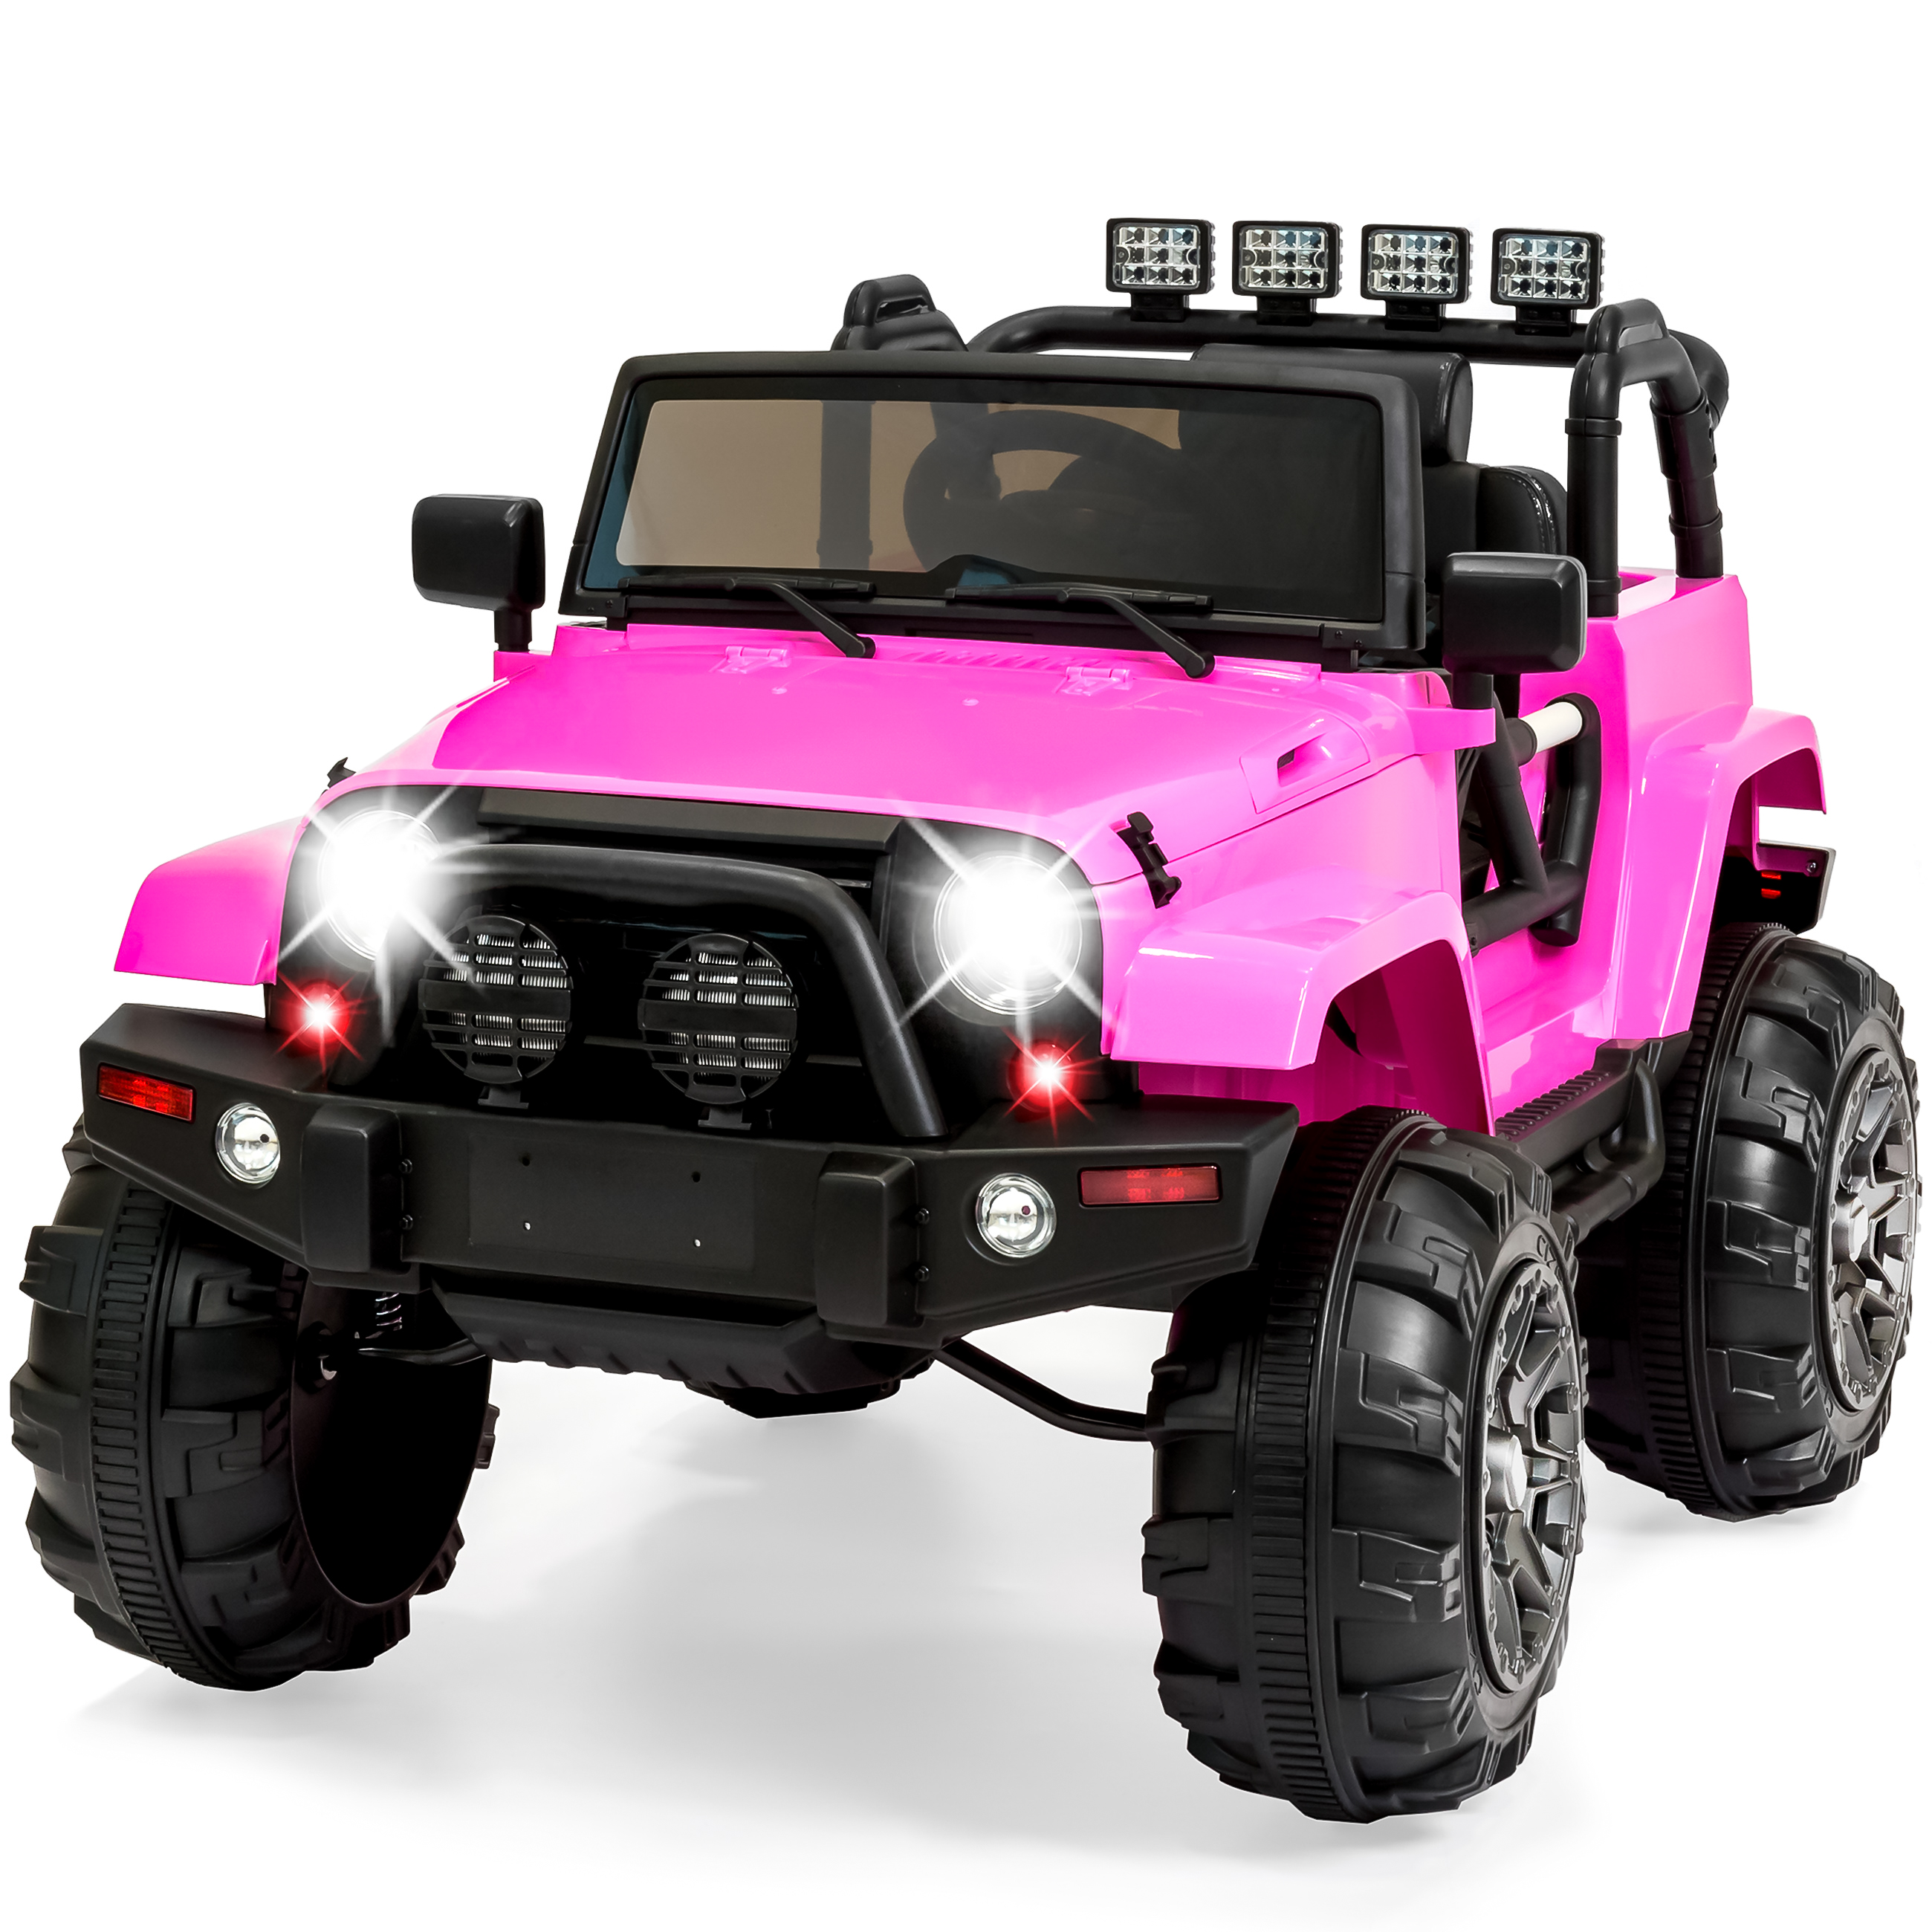 Best Choice Products 12V Ride On Car Truck w  Remote Control, 3 Speeds, Spring Suspension, LED Light Pink by Best Choice Products